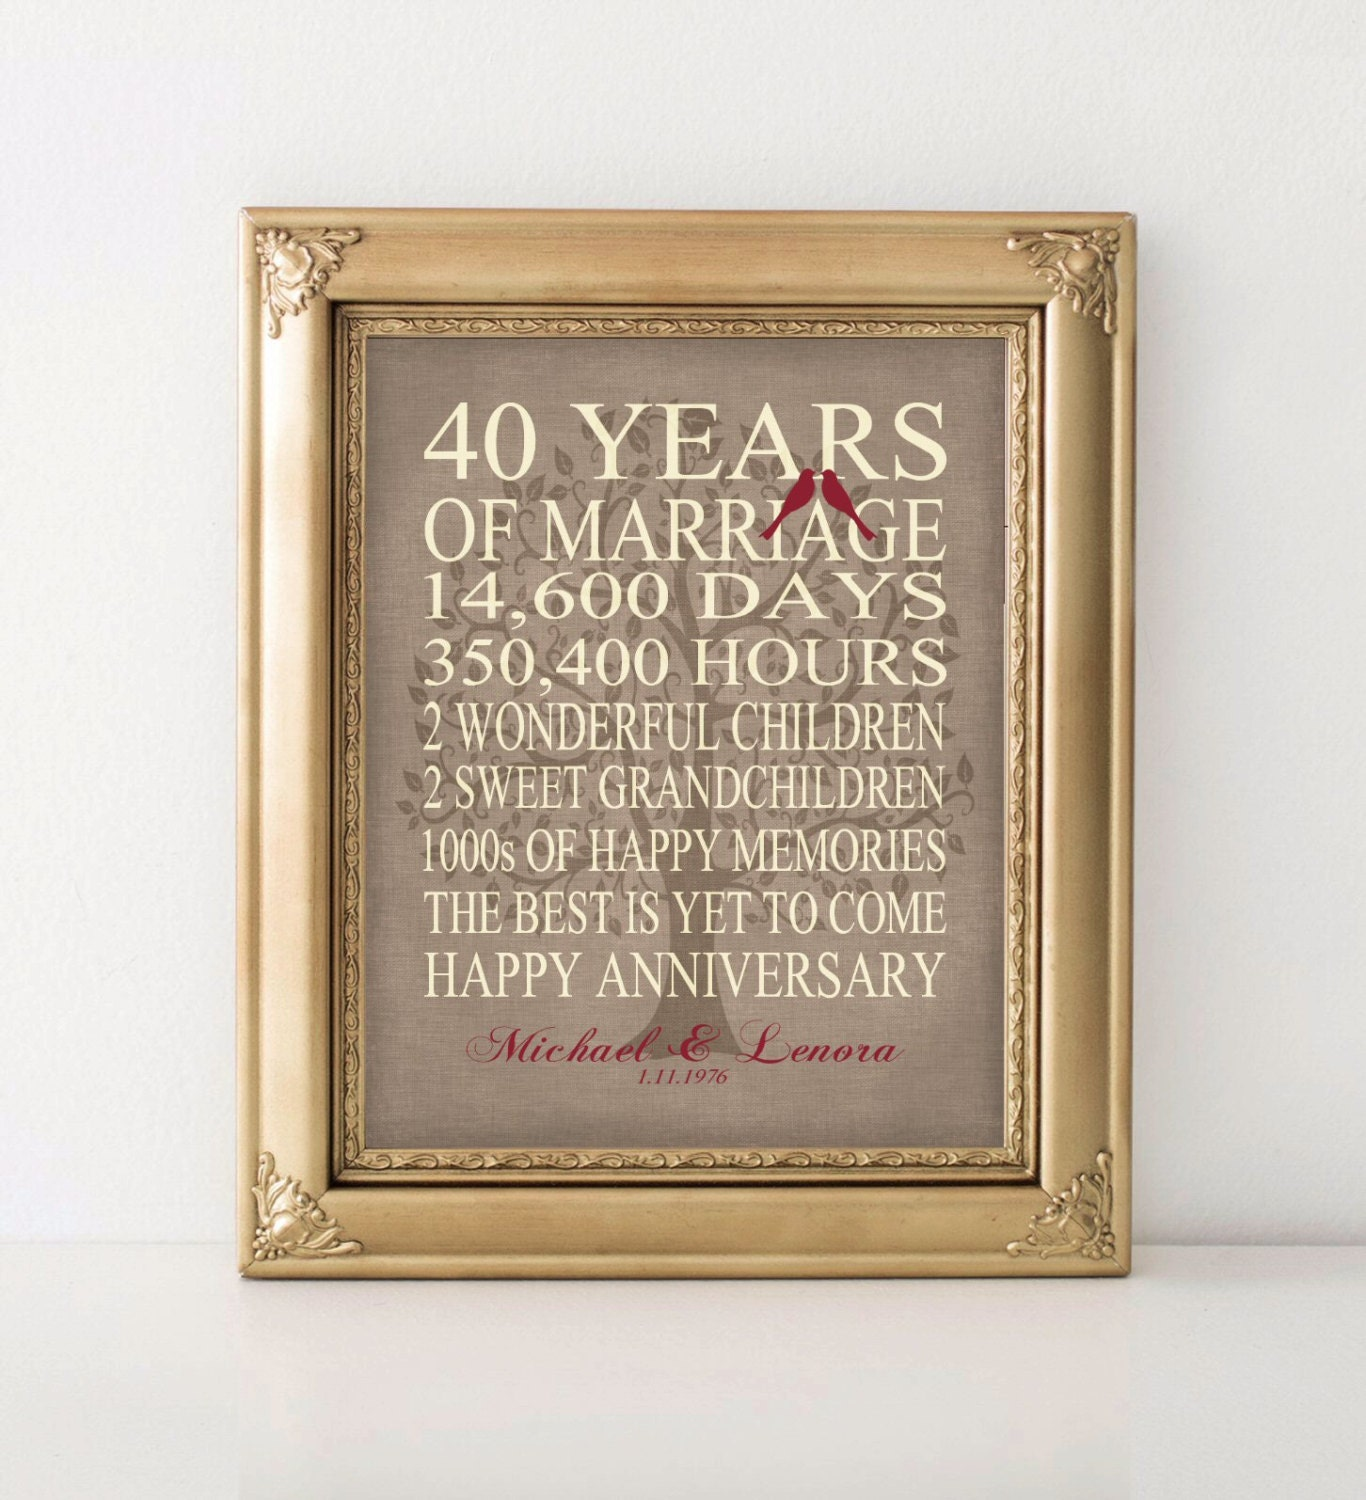 Wedding anniversary gift 40th anniversary gift personalized for Best marriage anniversary gifts